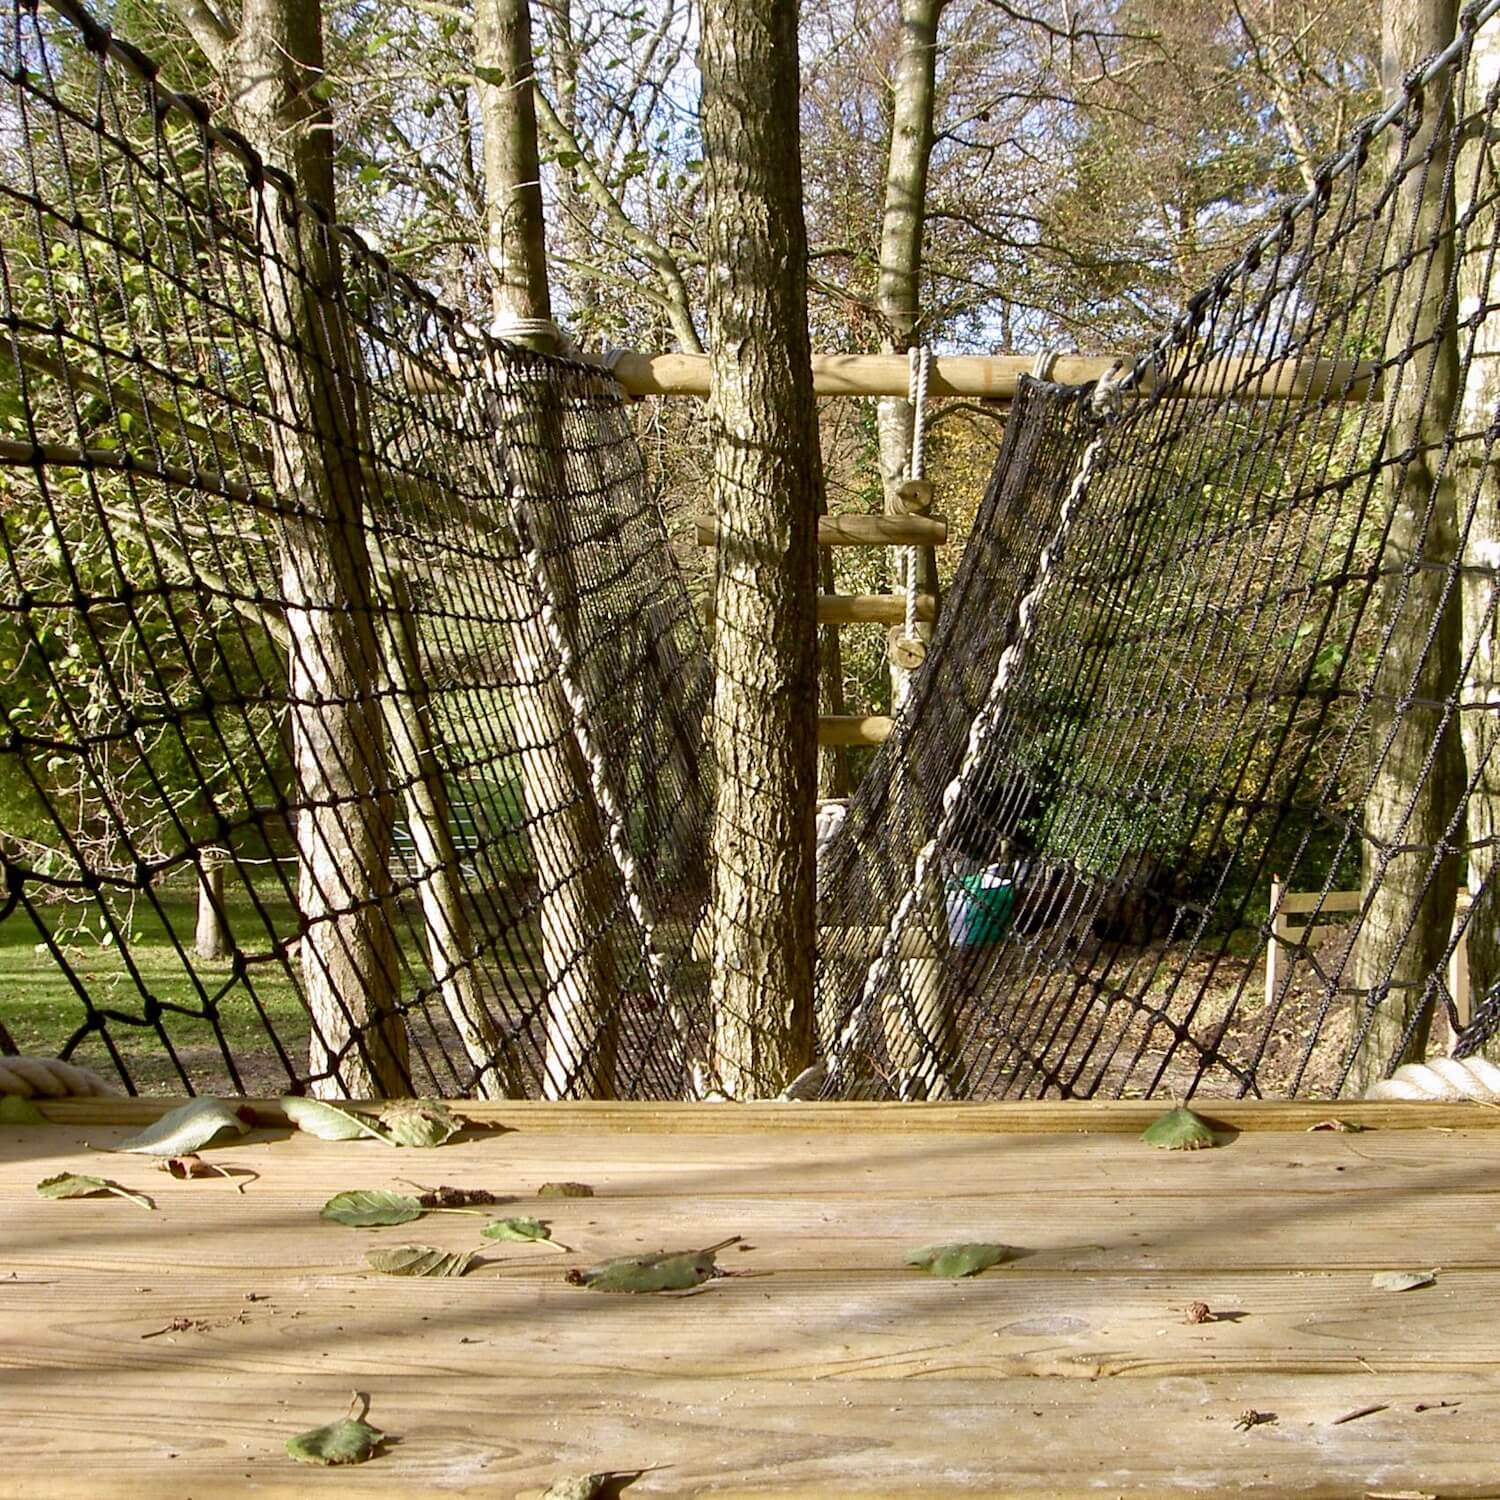 Treehouse platform leading to Treetop Walkway wrapping a tree